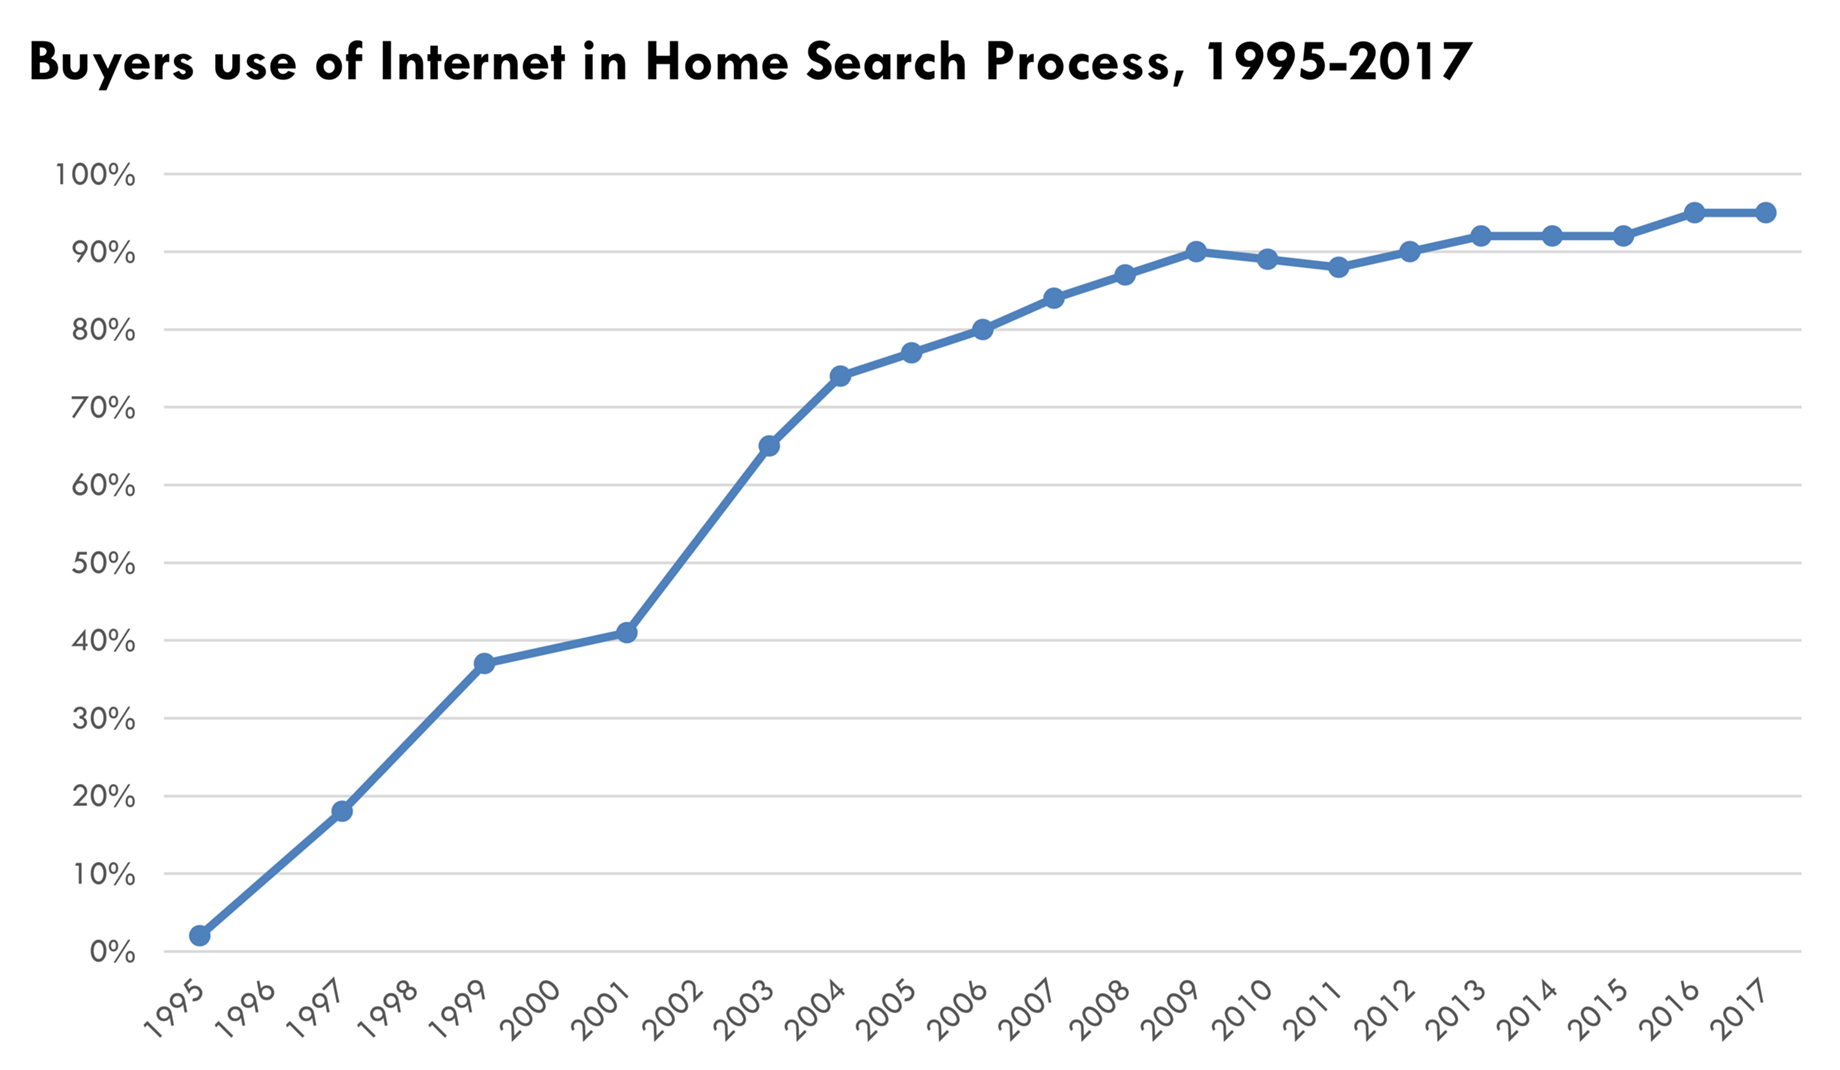 Buyers Use of the Internet in Home Search Process from 1995 to 2017